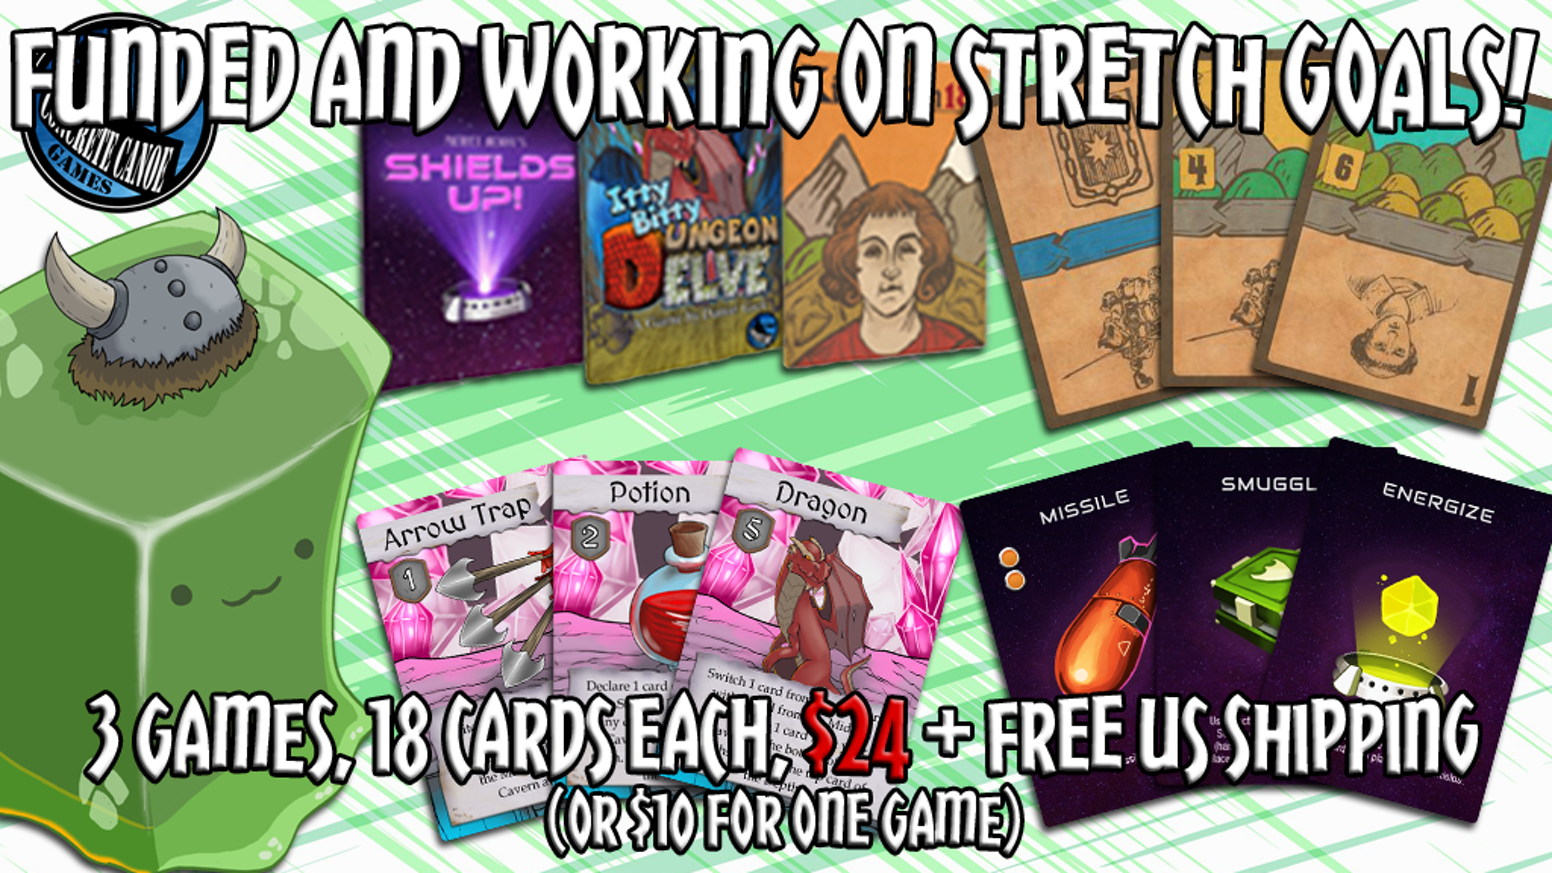 Three strategic, 18 card games for game night at home or on the go. Micro-deck building, hidden information, and ship commanding fun!